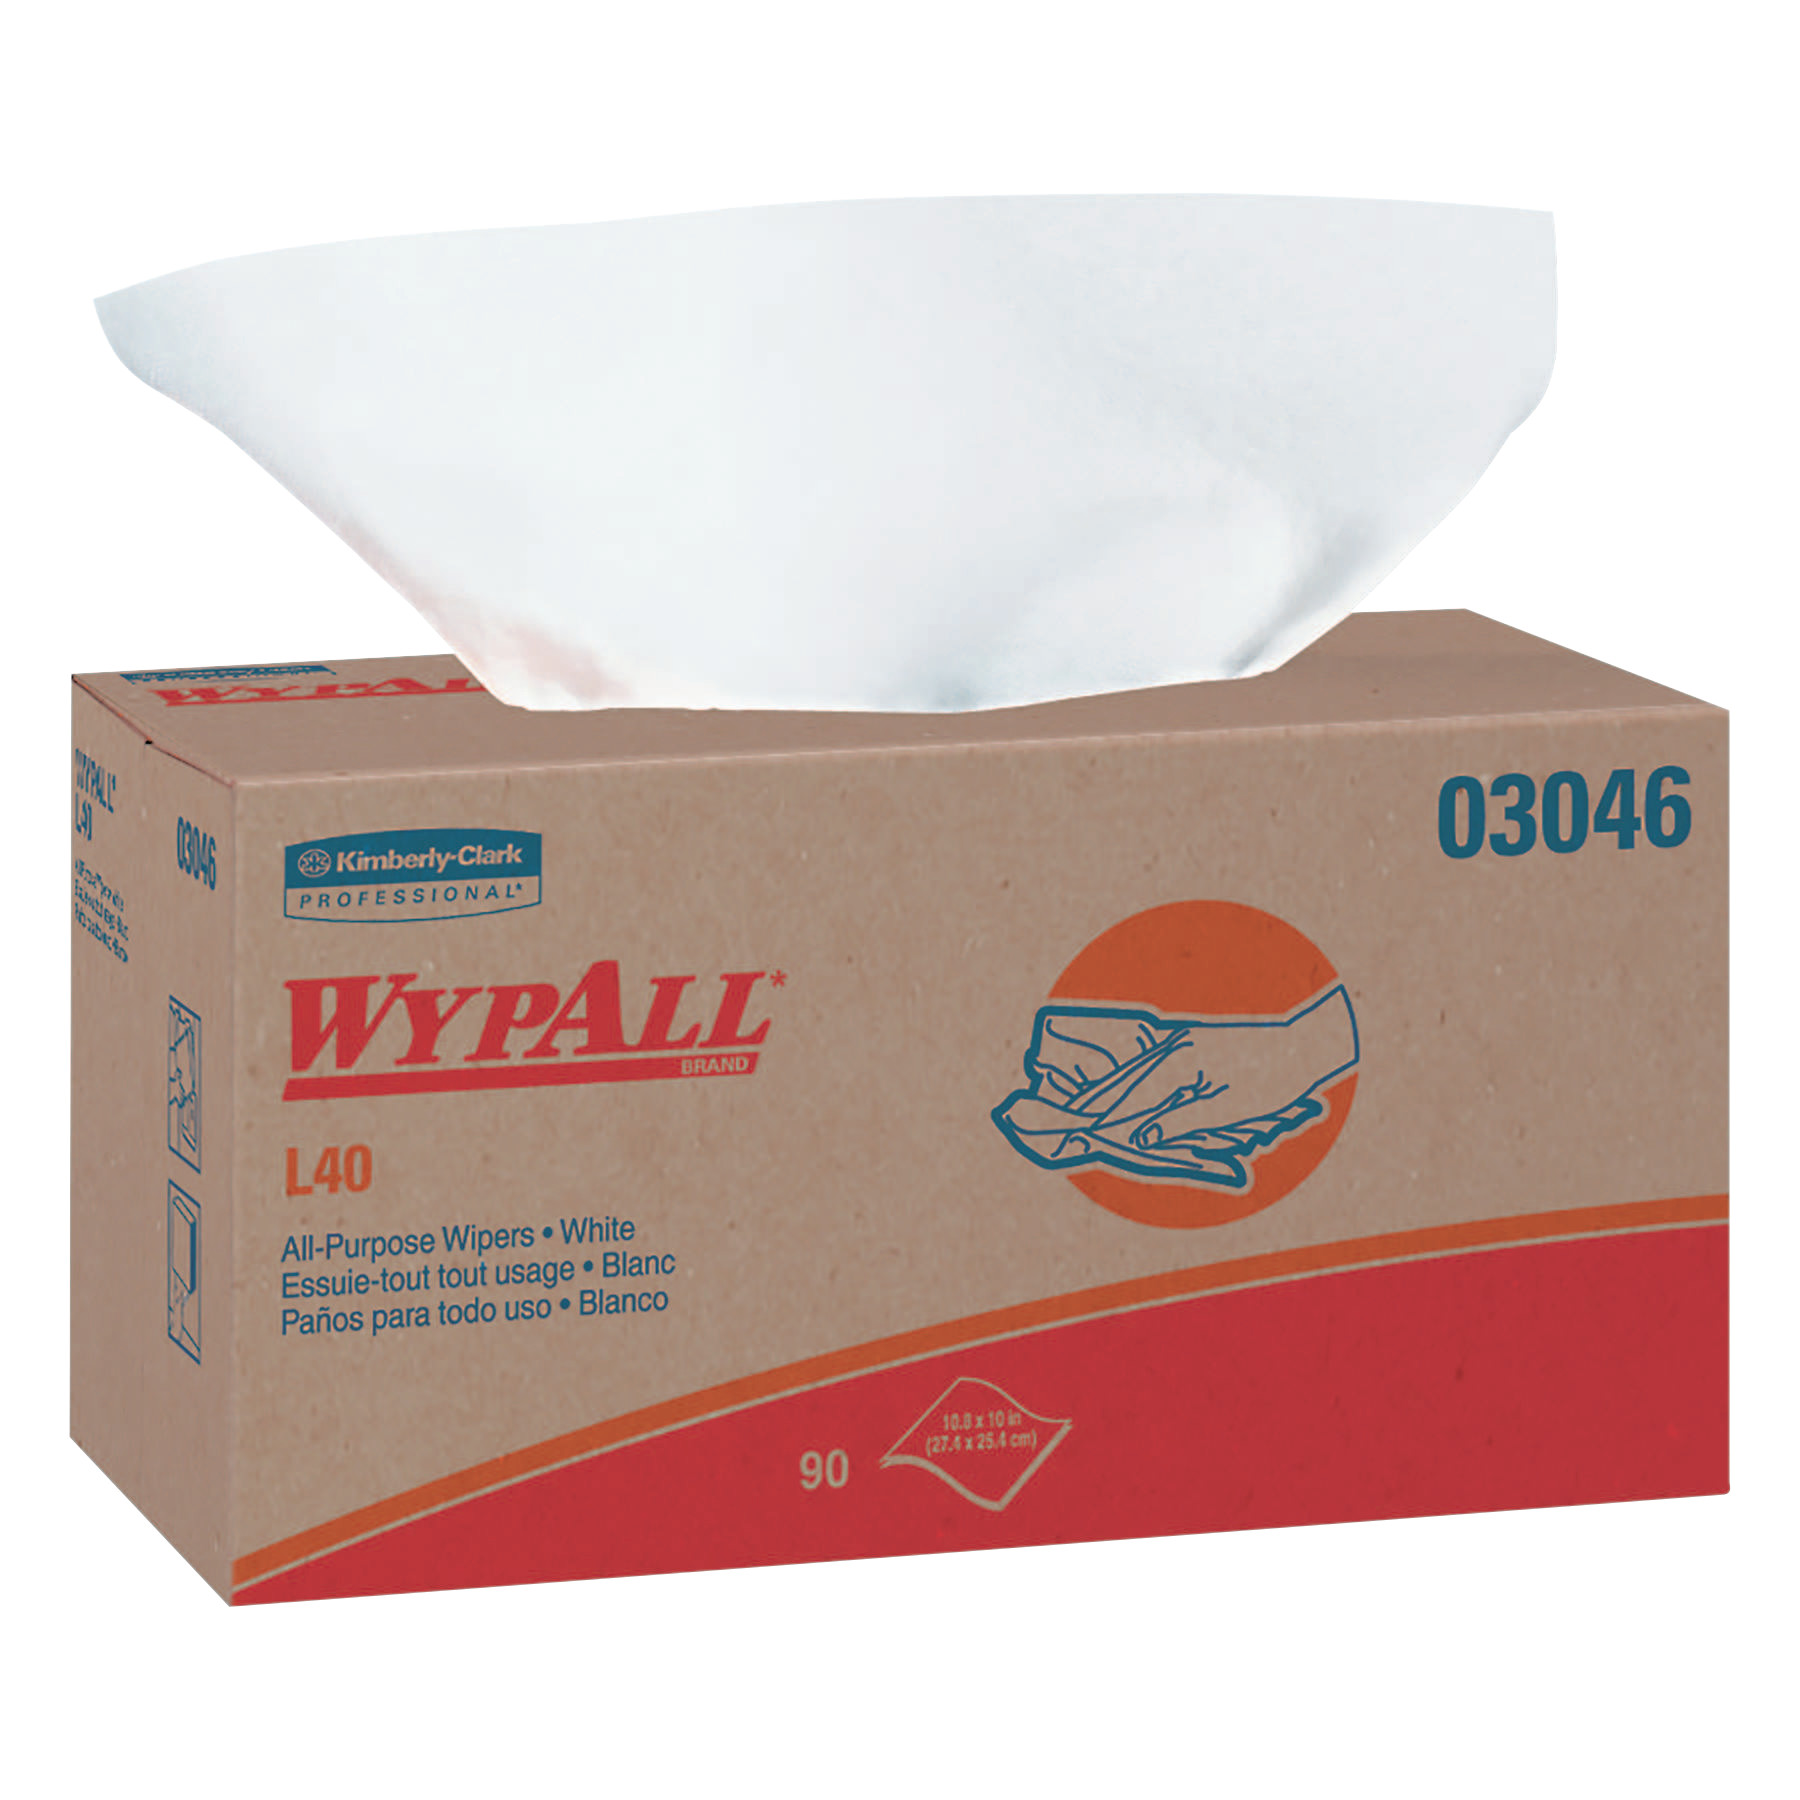 Kimberly-Clark Professional WypAll L40 Wipers, Pop-Up Box, White